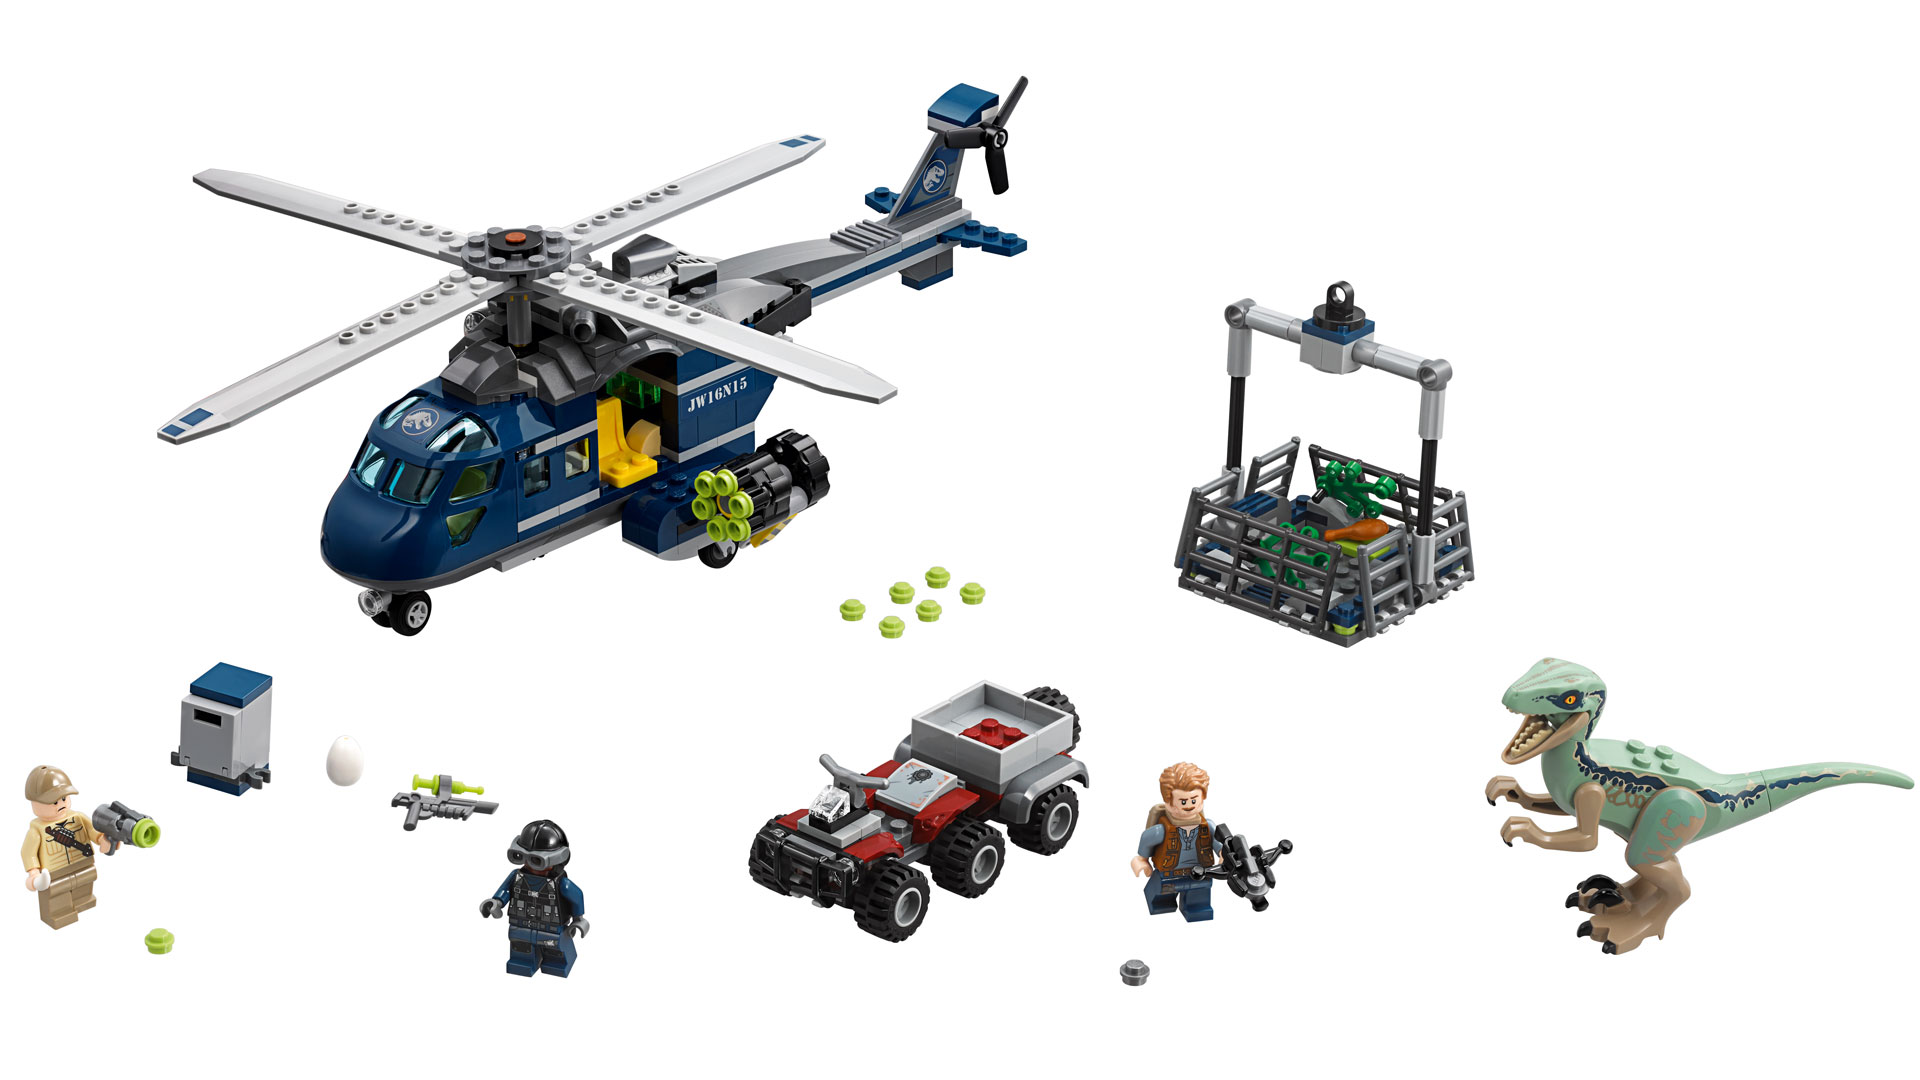 LEGO Jurassic World Set 75928 Blue's Helicopter Pursuit at Toy Fair 2018